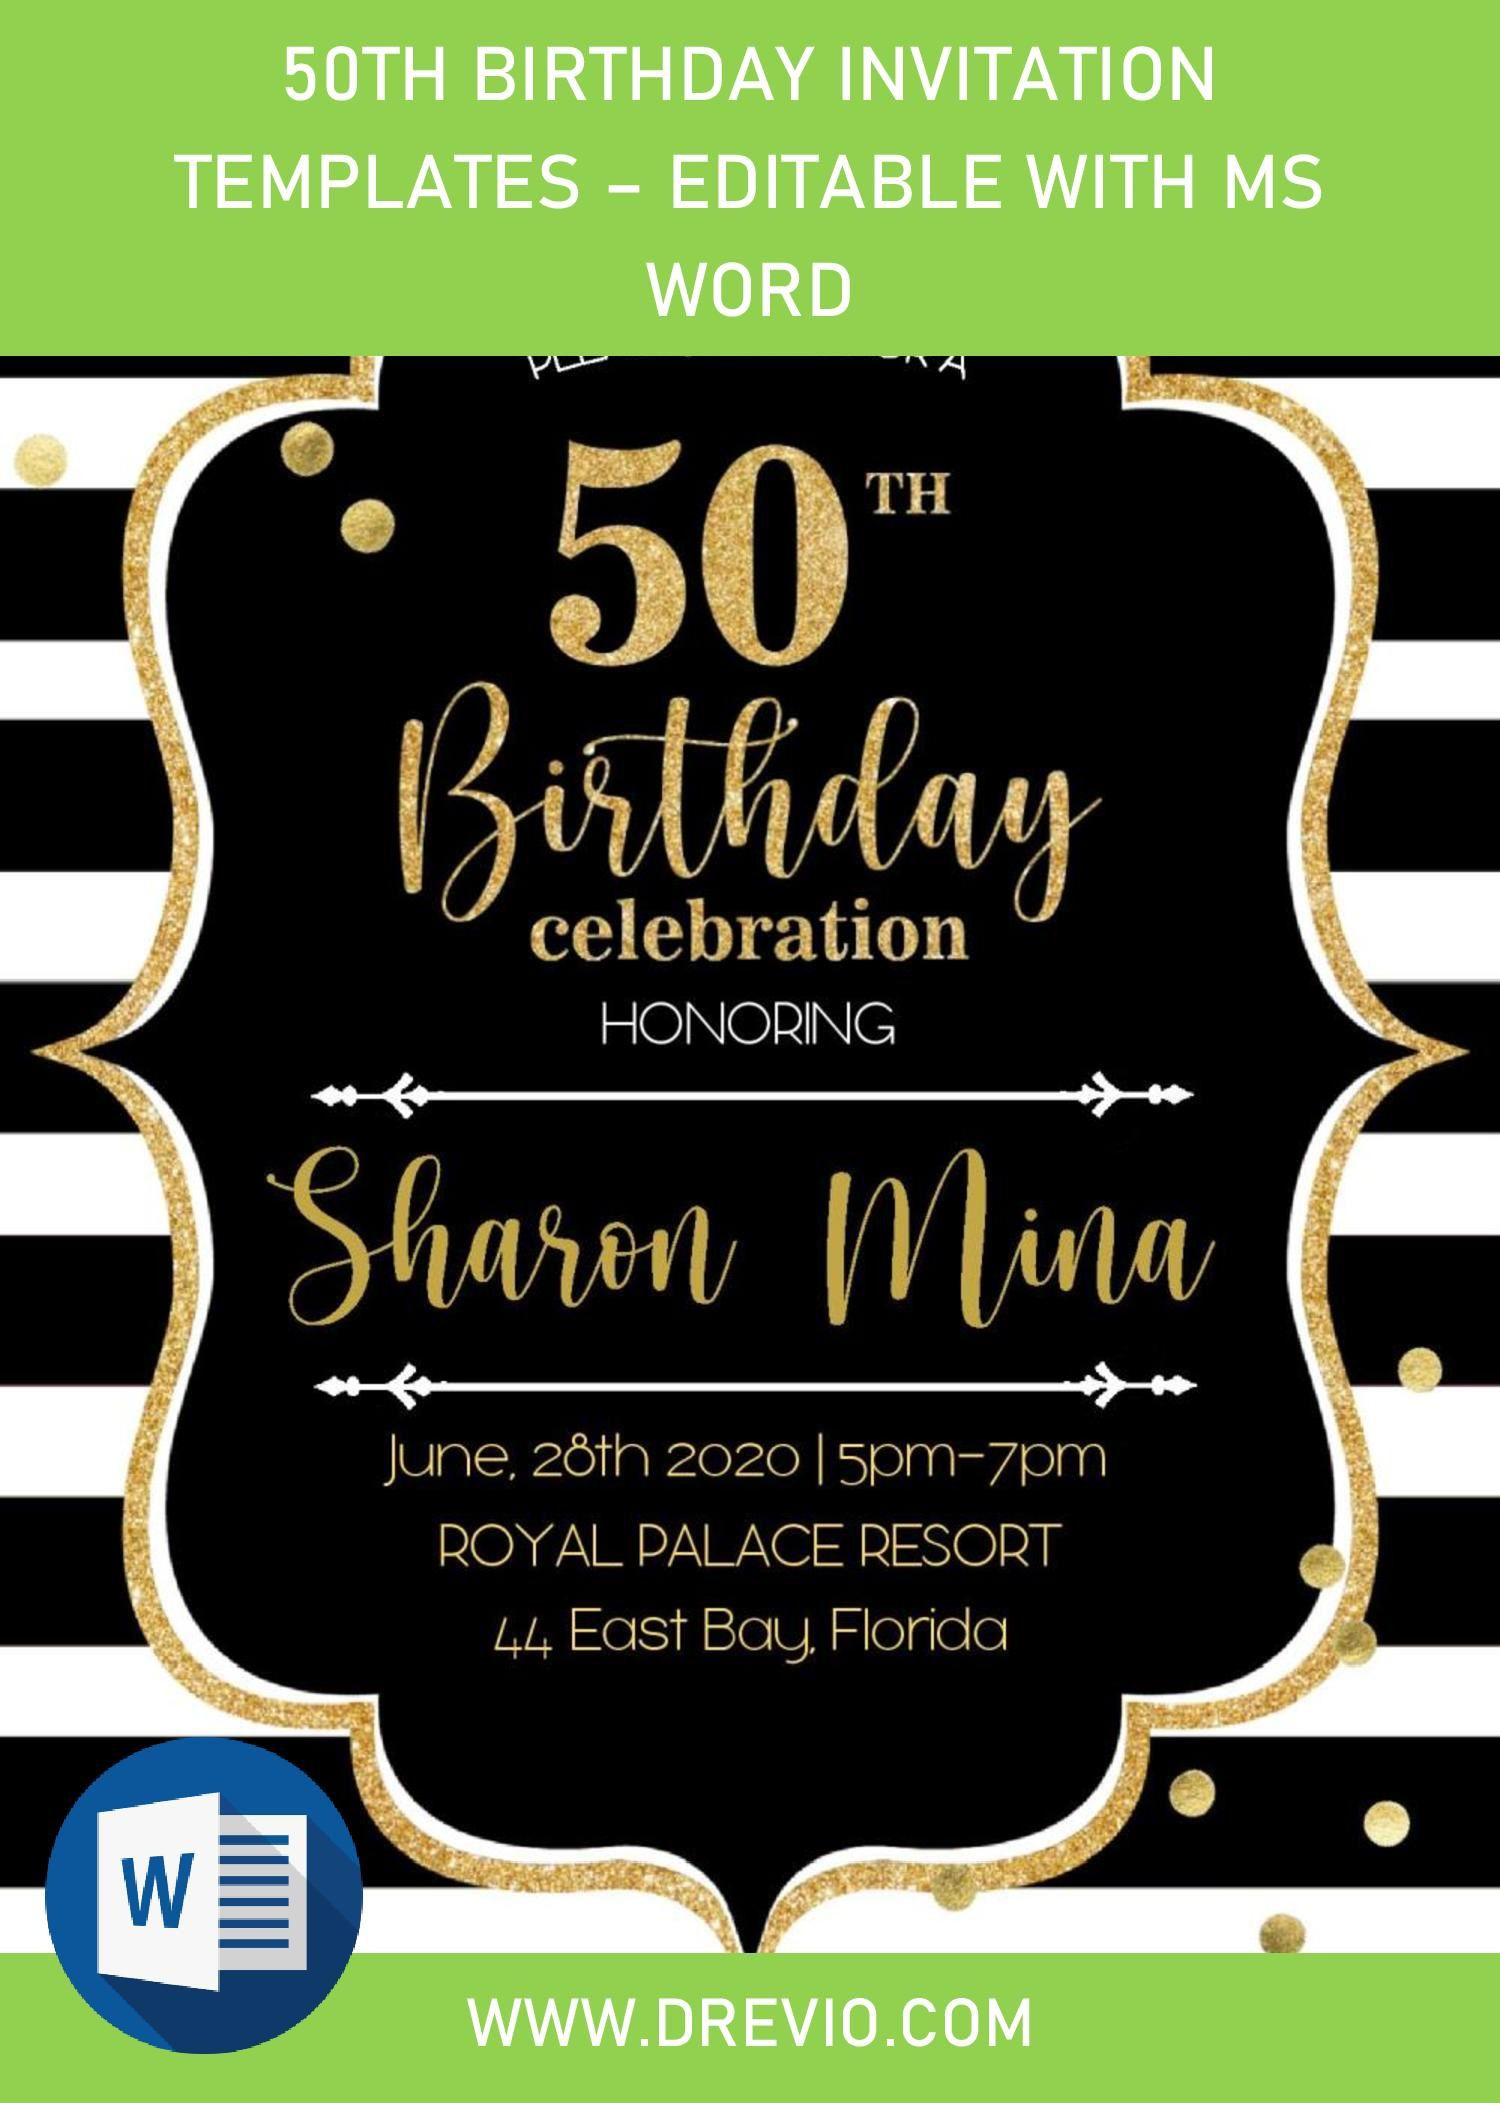 003 Exceptional Birthday Invite Template Word Free Picture  Party InvitationFull